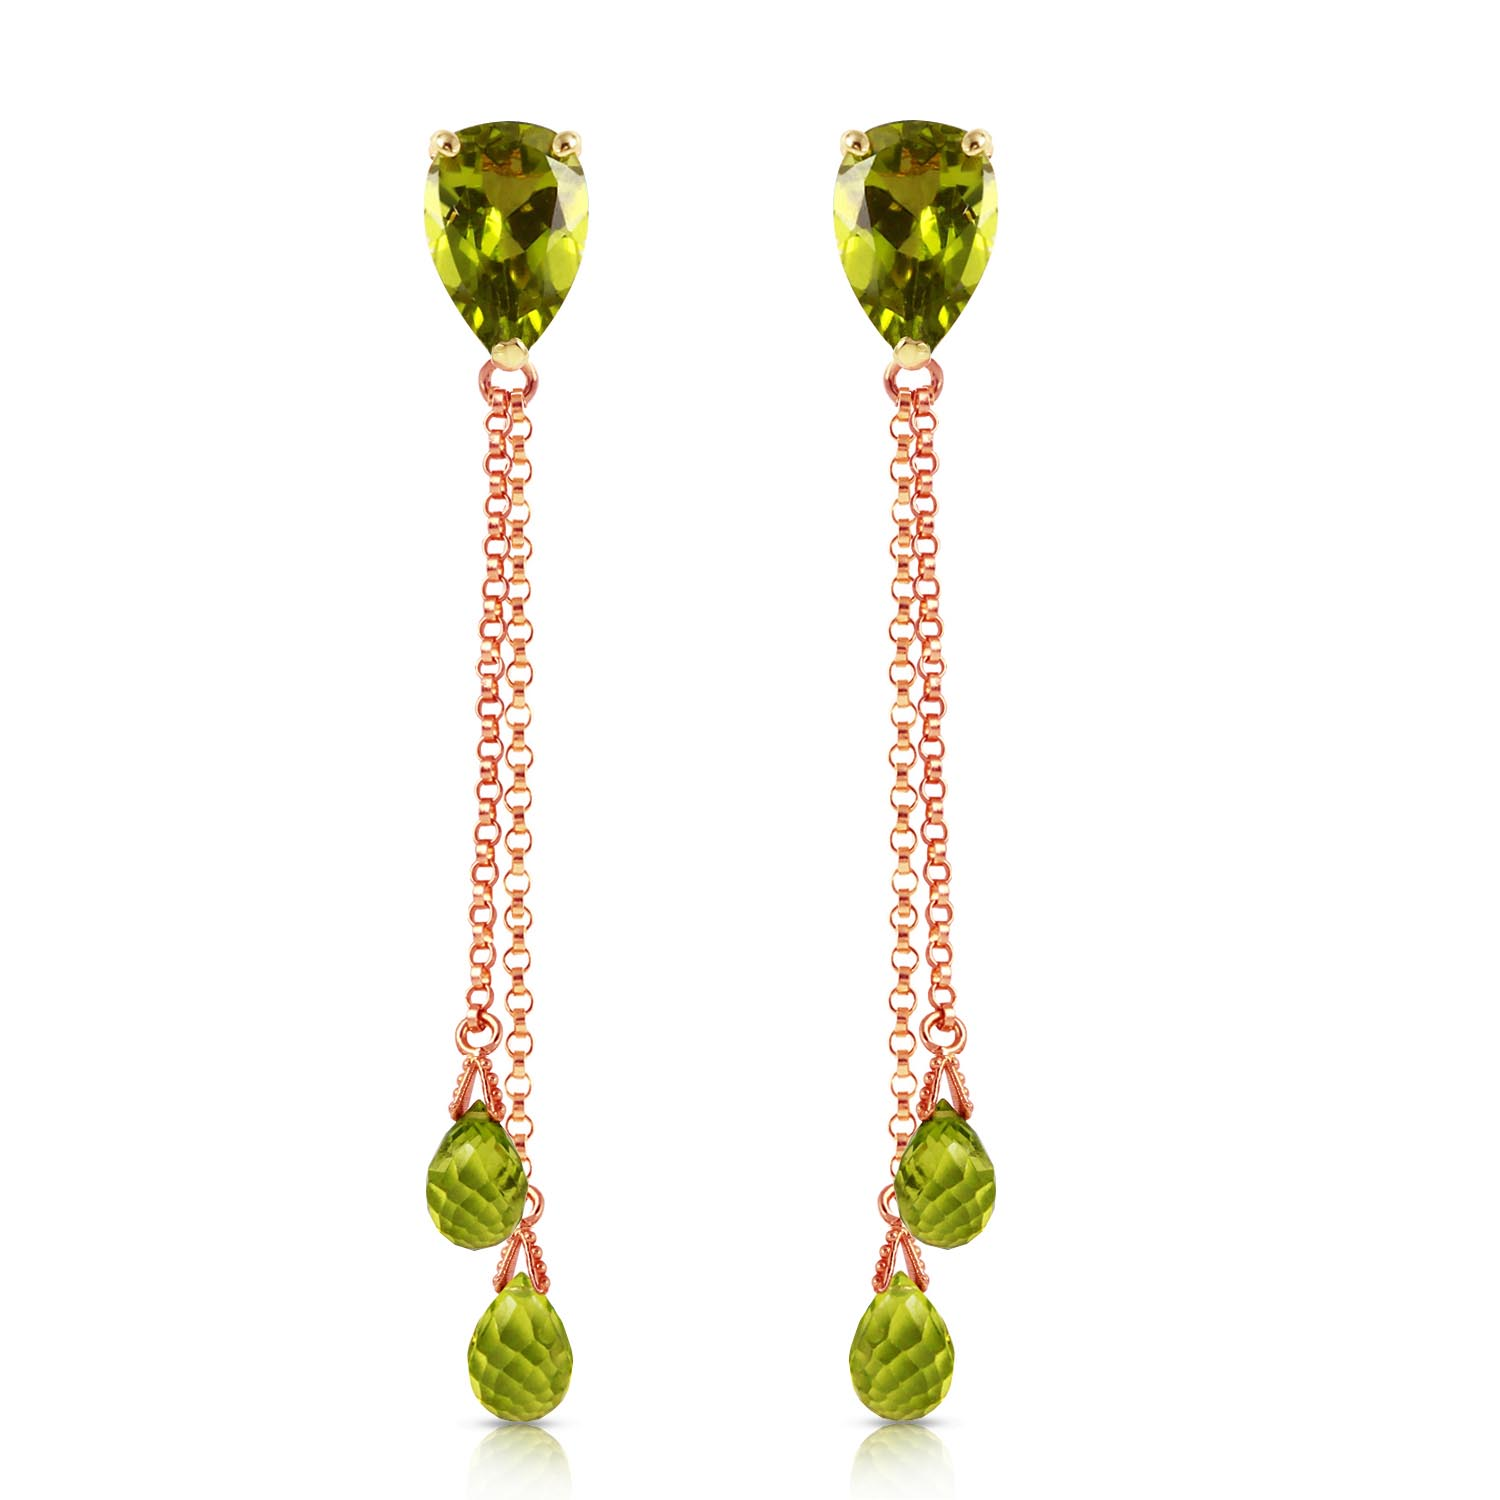 Peridot Droplet Earrings 7.5ctw in 9ct Rose Gold